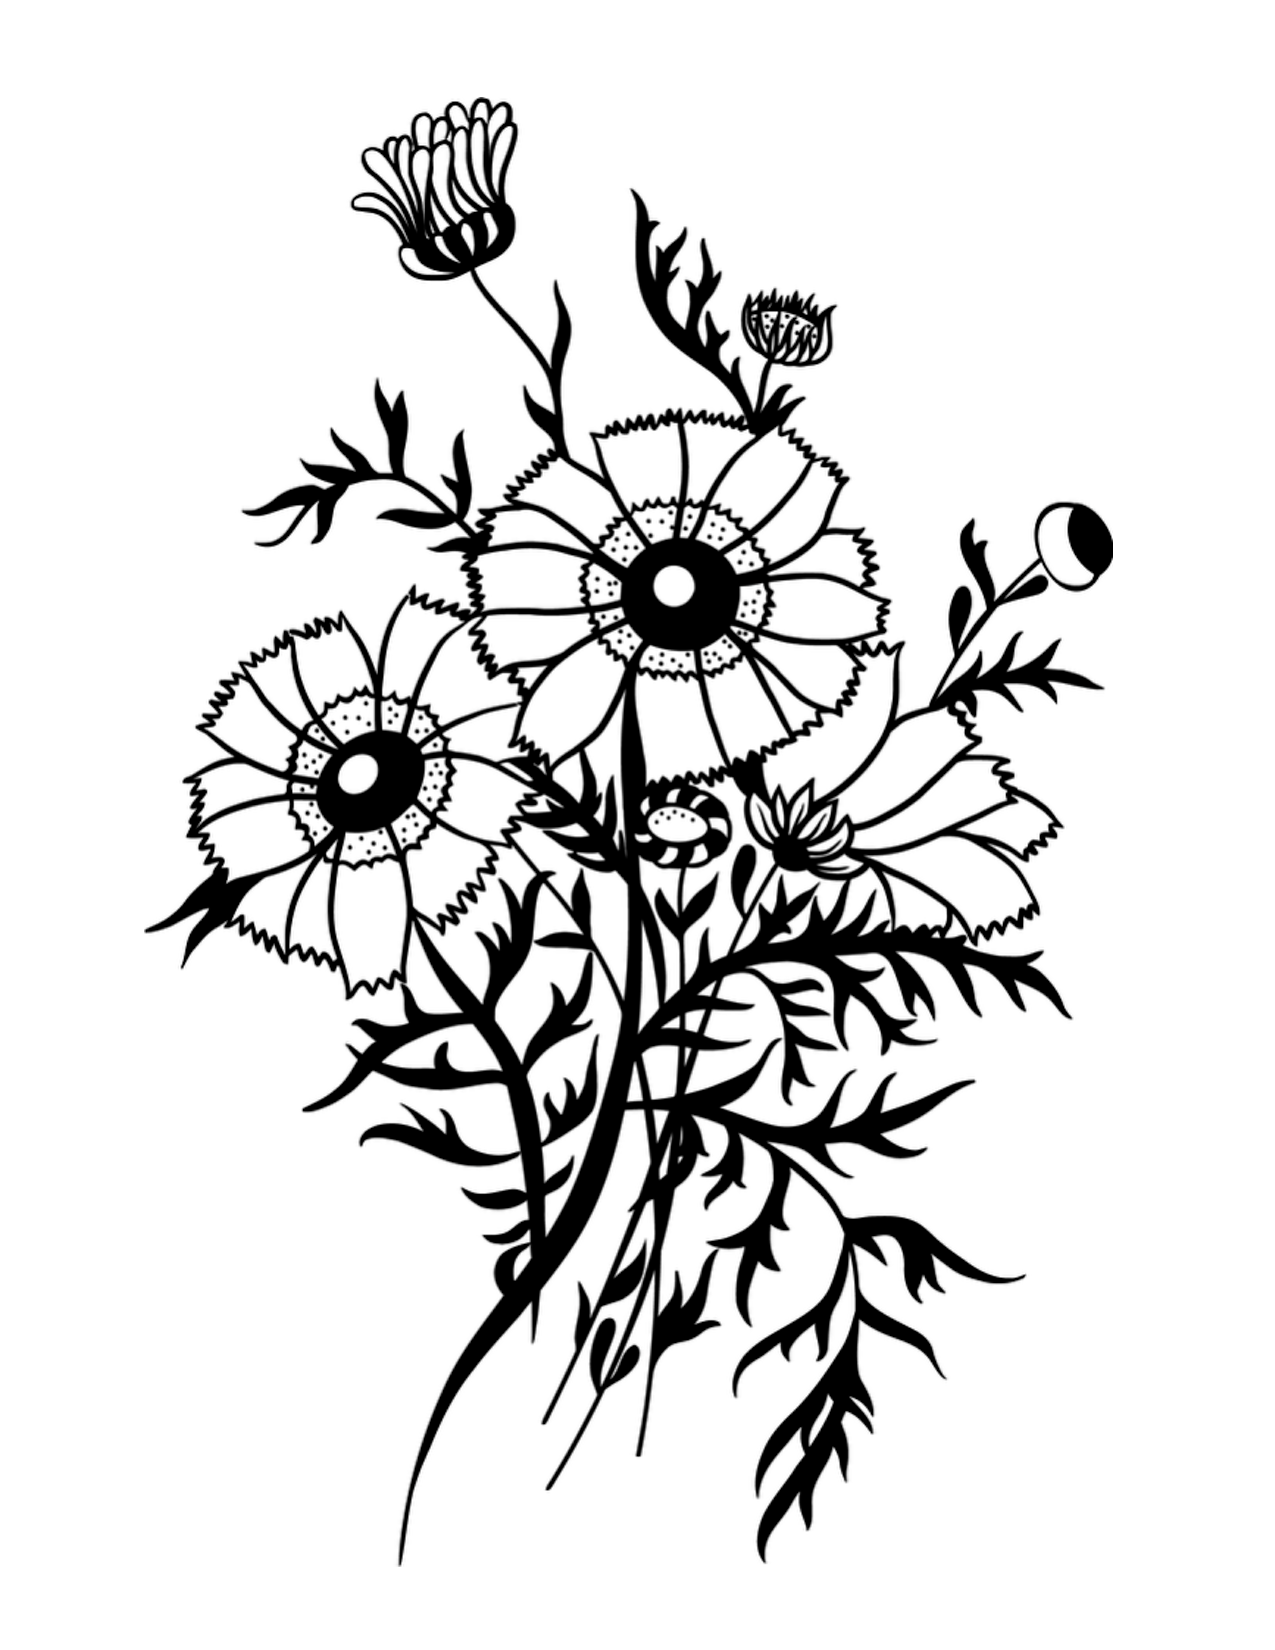 Wildflower Bouquet Drawing at GetDrawings.com | Free for personal ...